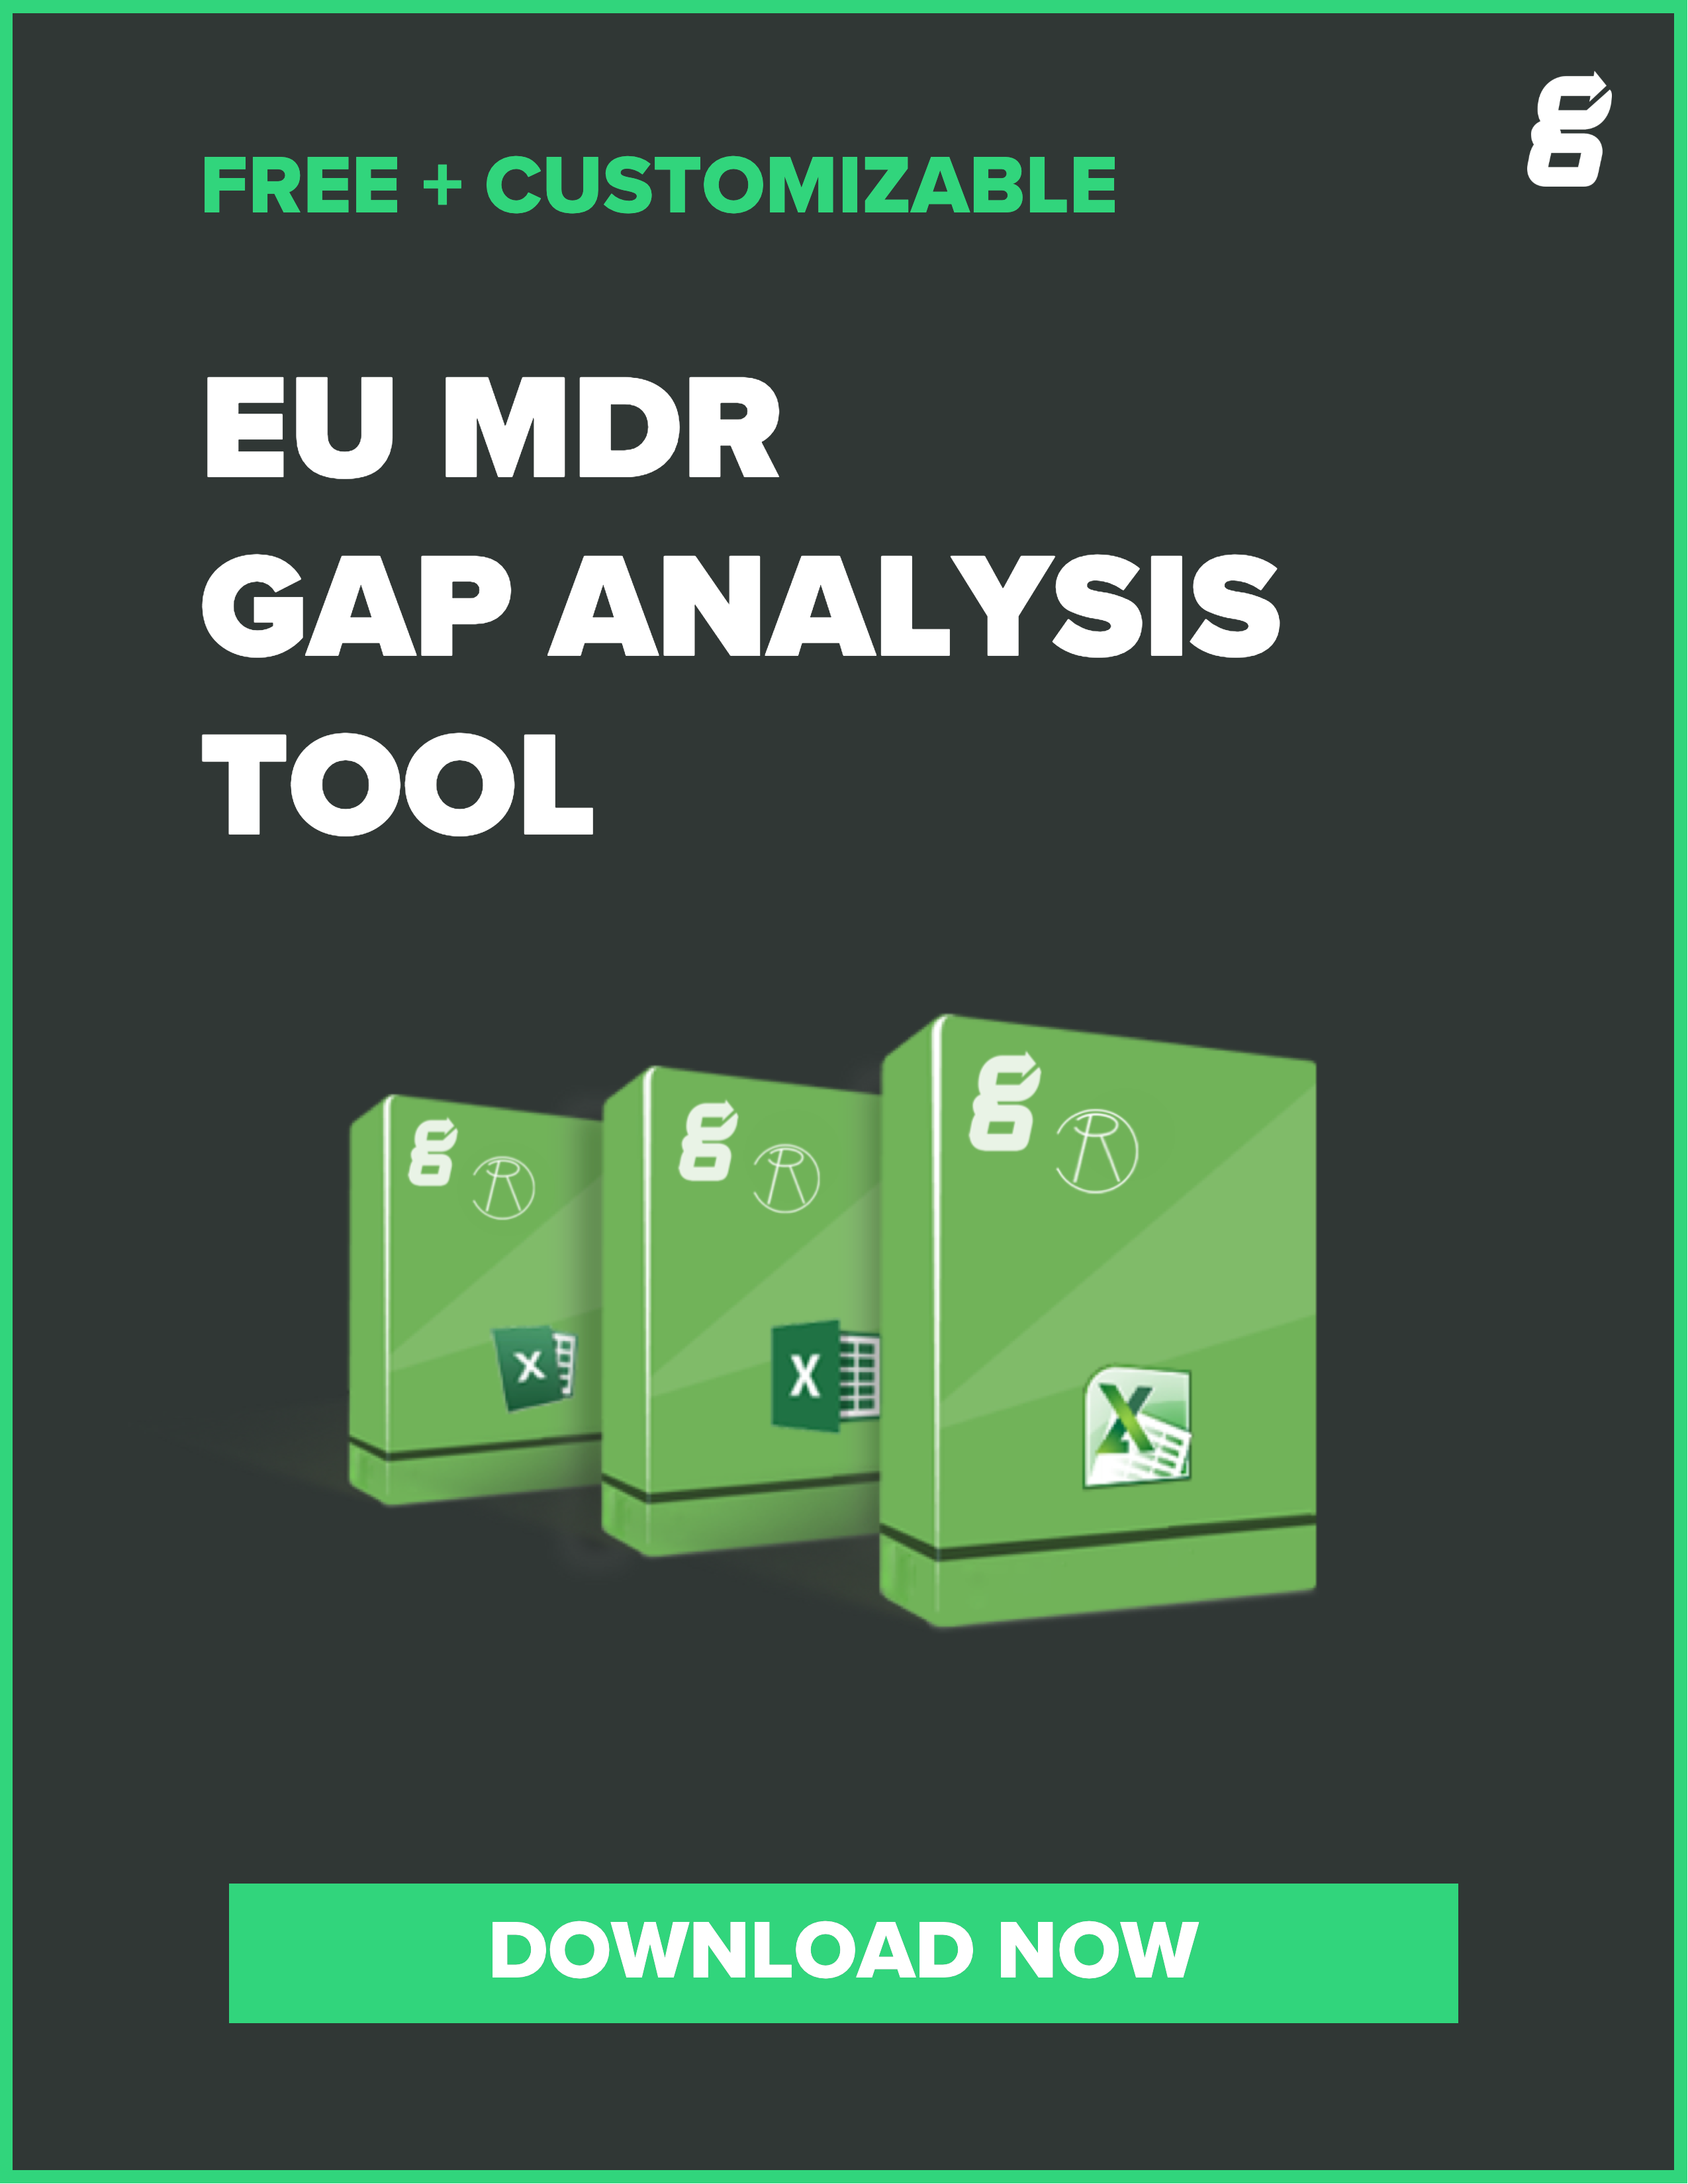 EU-MDR-Gap-Analysis-Tool-Free-Download